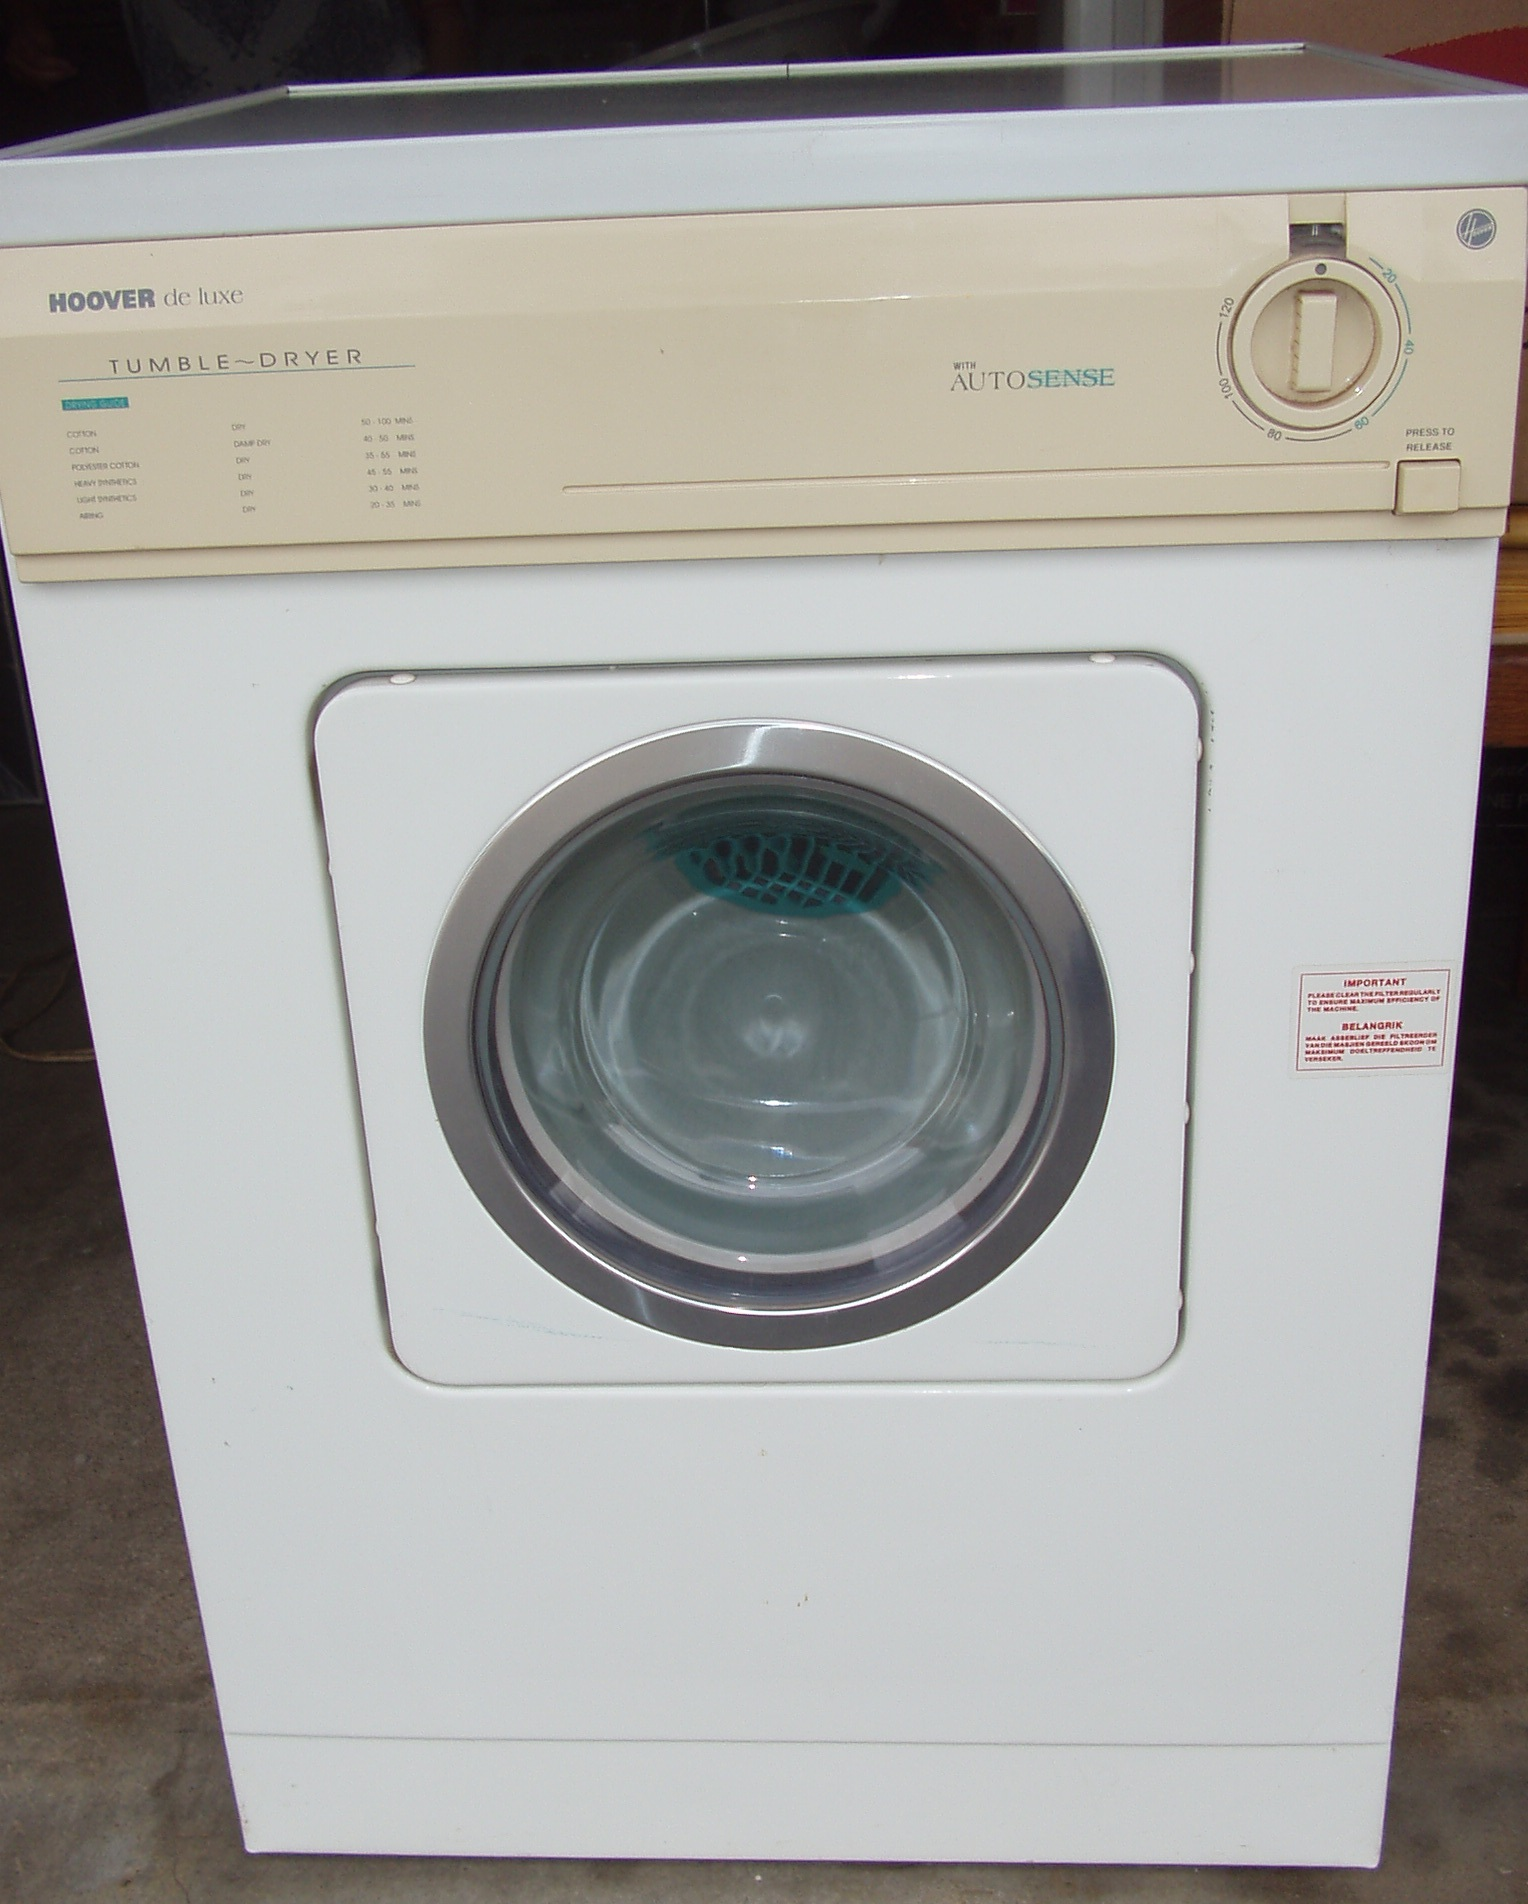 Tumble Dryer - Hoover de Luxe - in excellent working order with manuals